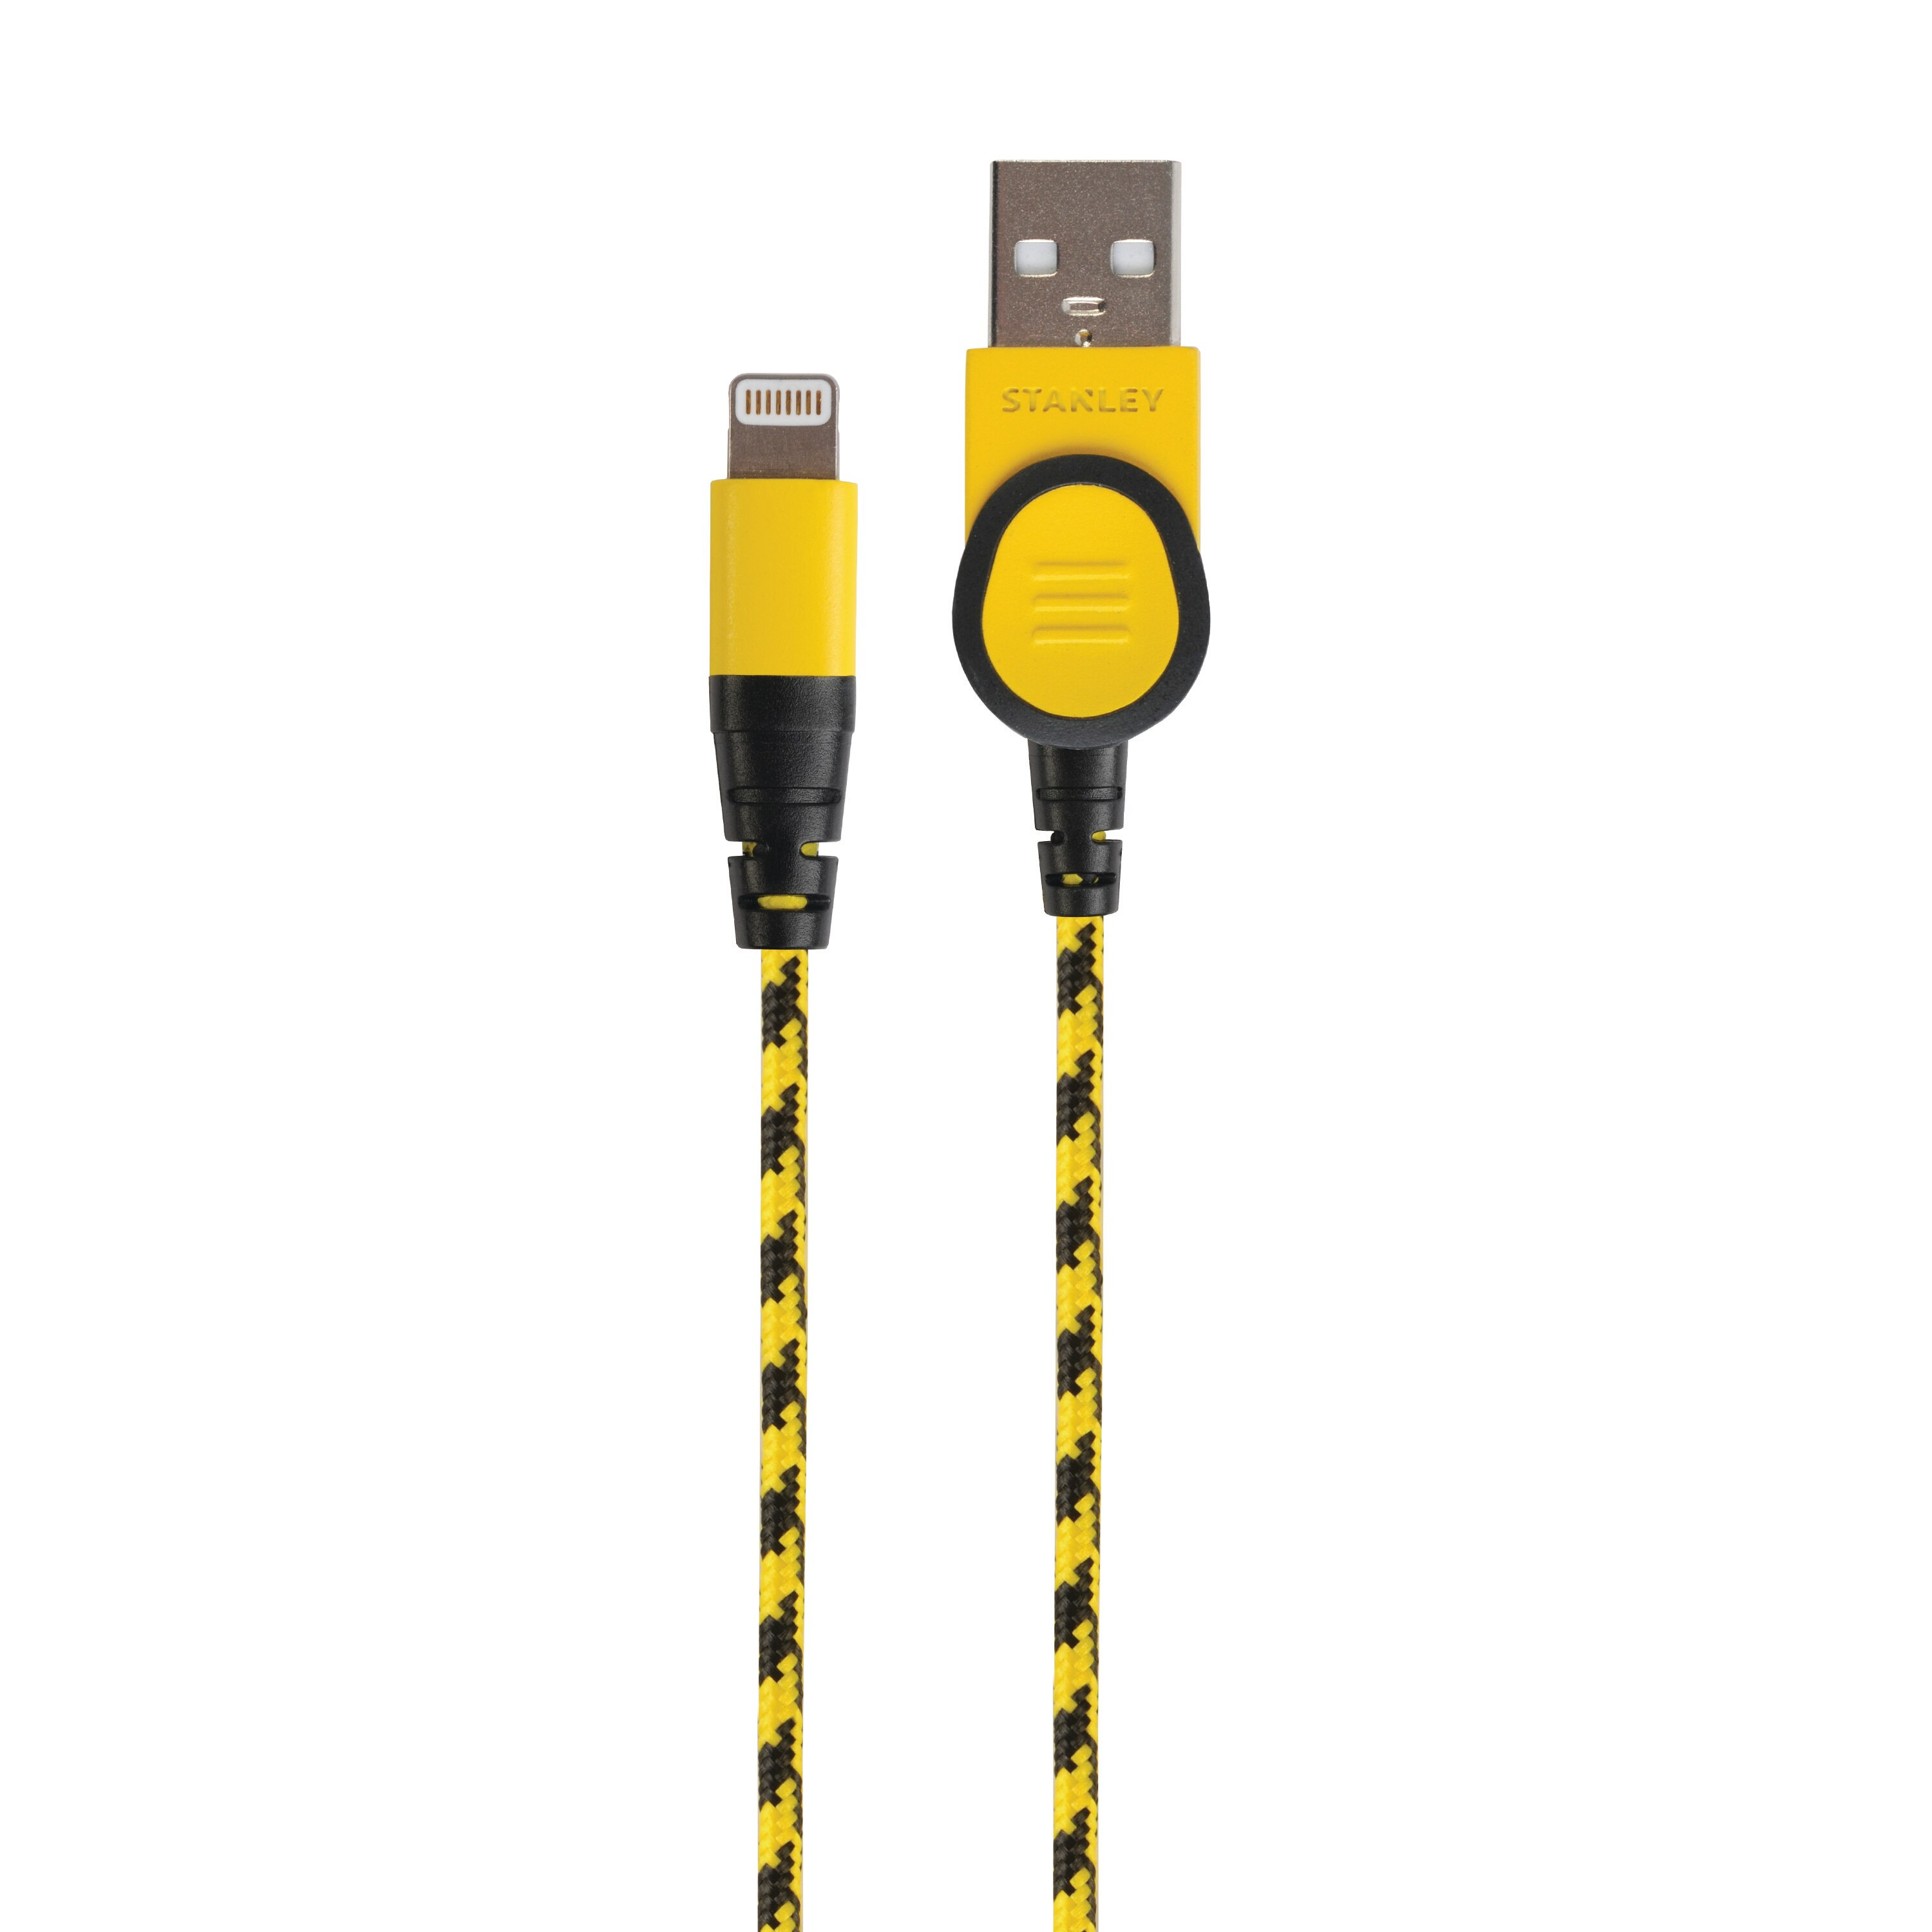 Stanley Tools - Braided Cable for Lightning - 1319560ST2